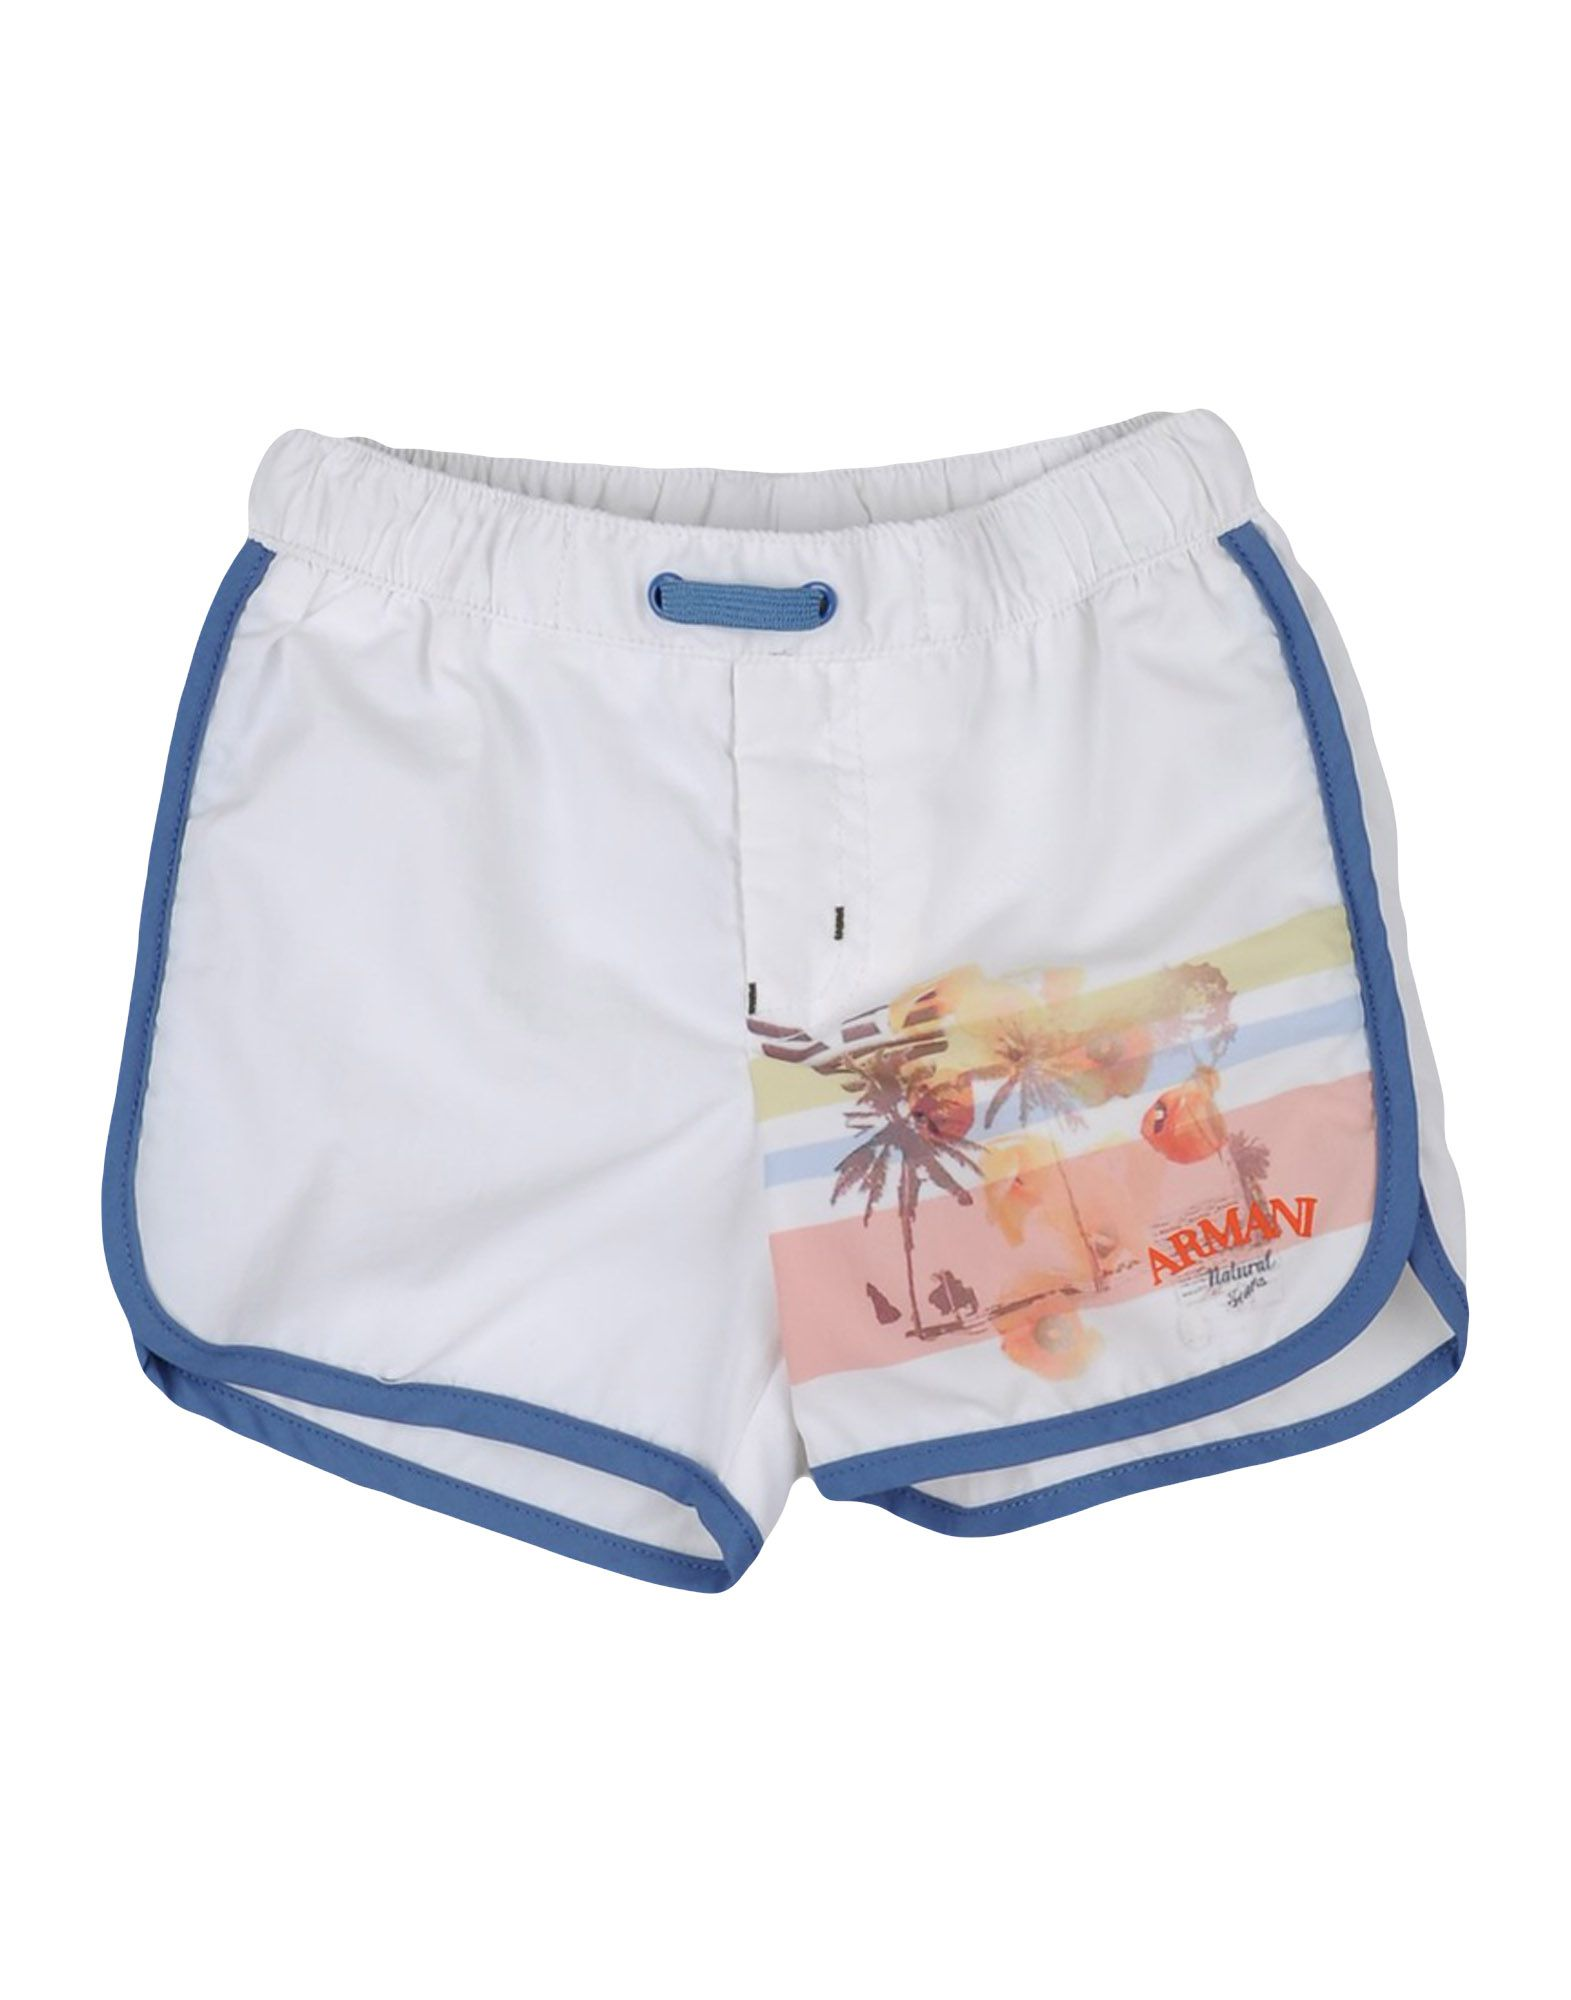 ARMANI JUNIOR Swim trunks